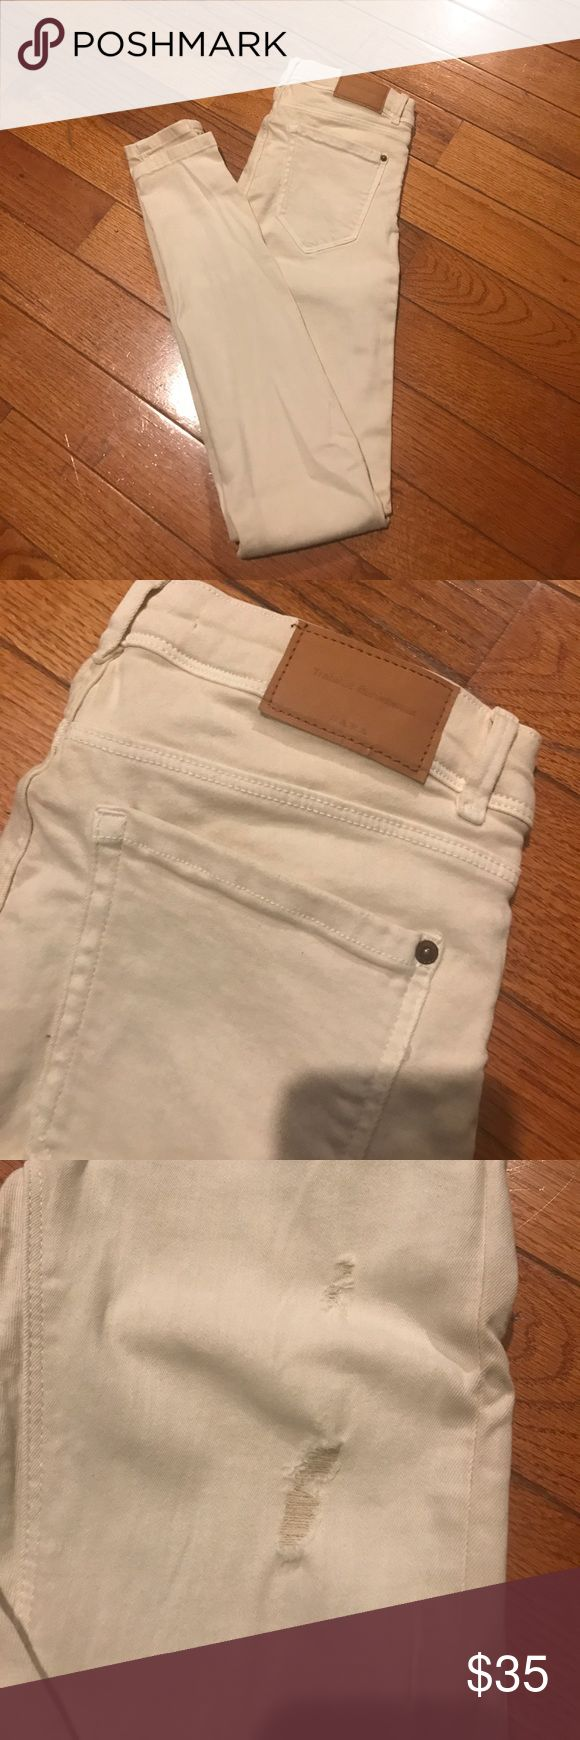 Zara trafaluc super skinny jeans NWT Zara Trafaluc super skinny jeans. Off white color. Mild distress on front with vshaped back seams for a flattering shape. Low rise, size 36/EUR, size 4/US. Zara Jeans Overalls